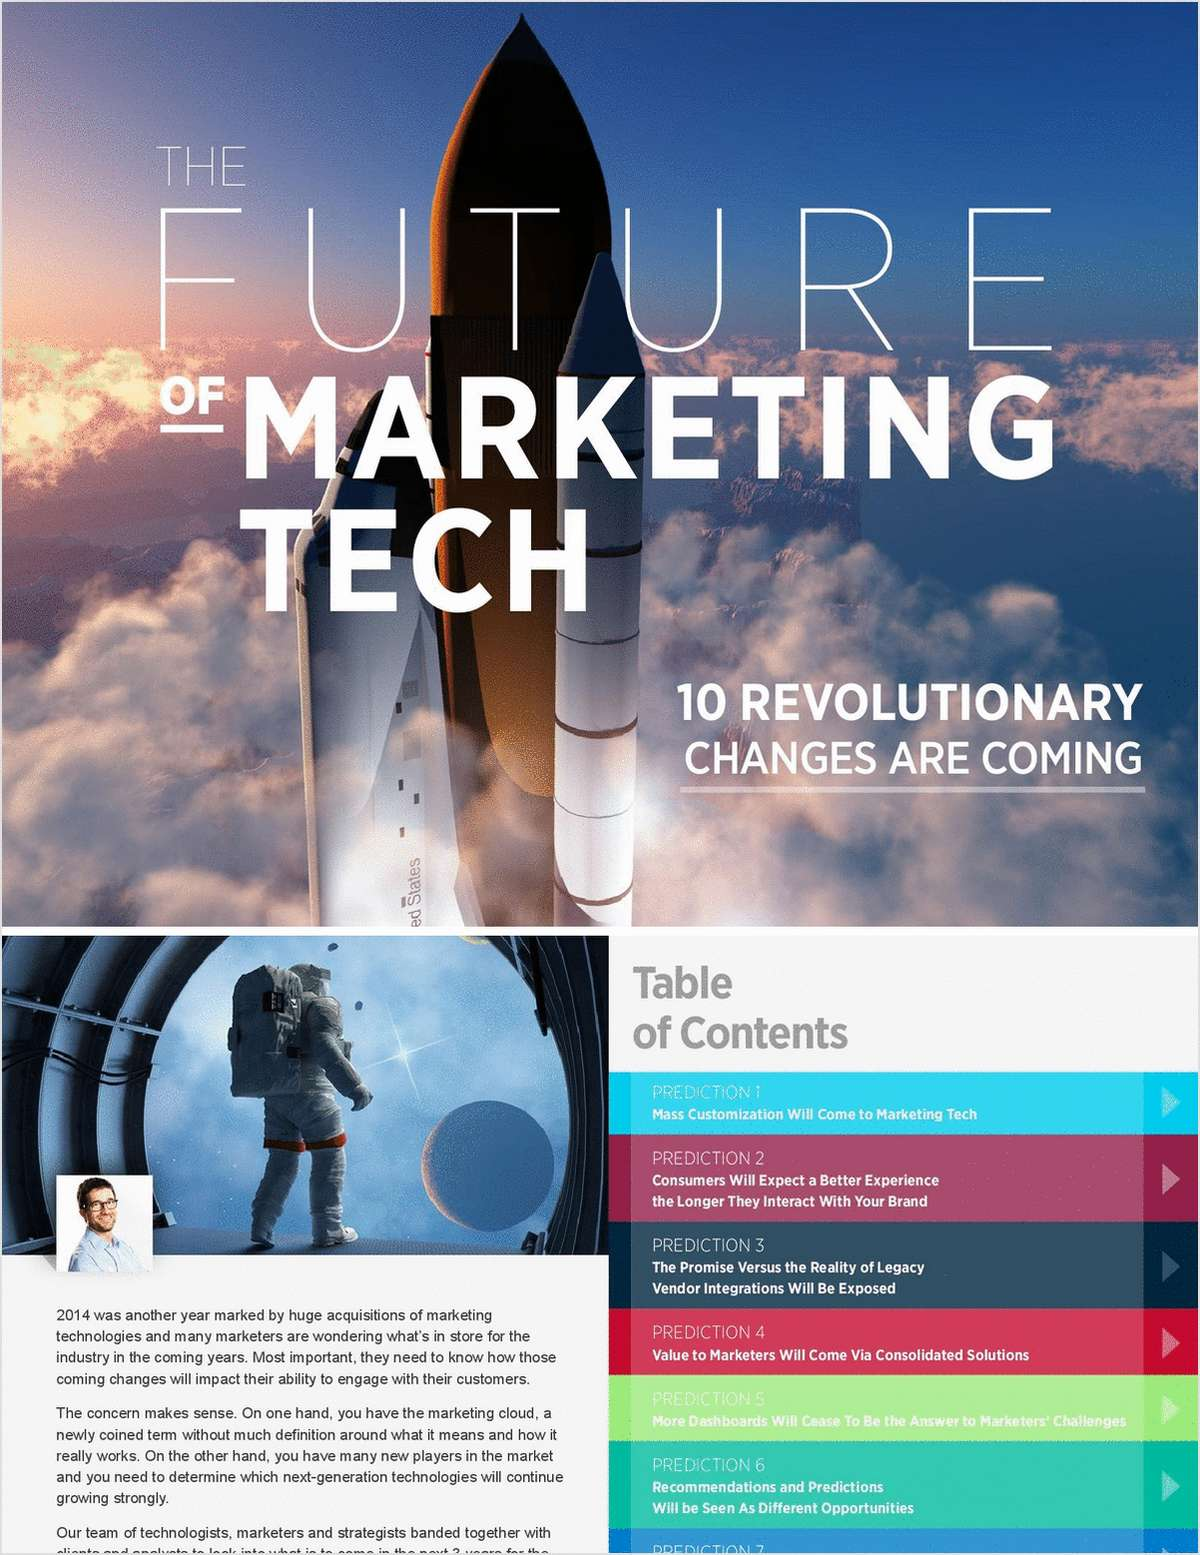 The Future of Marketing Tech